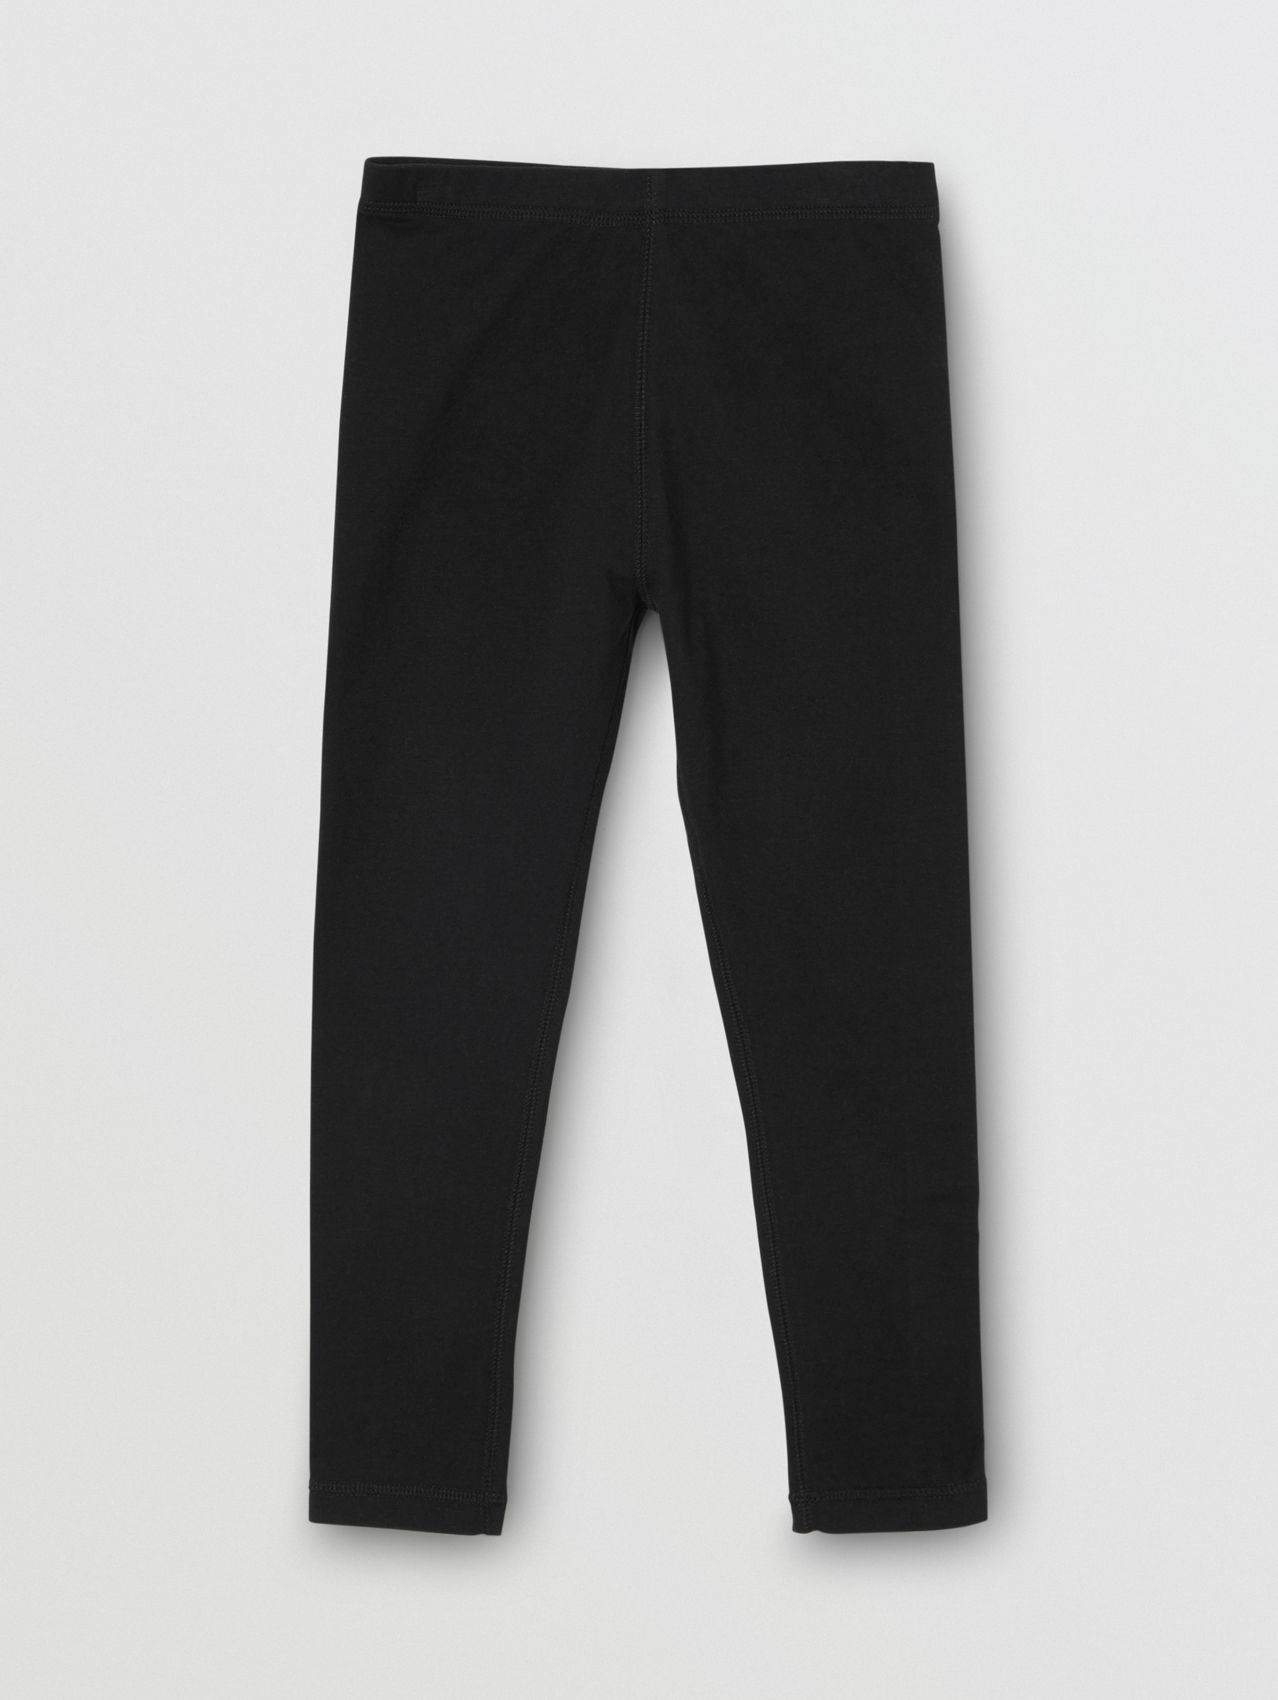 Logo Detail Stretch Cotton Leggings (Black)